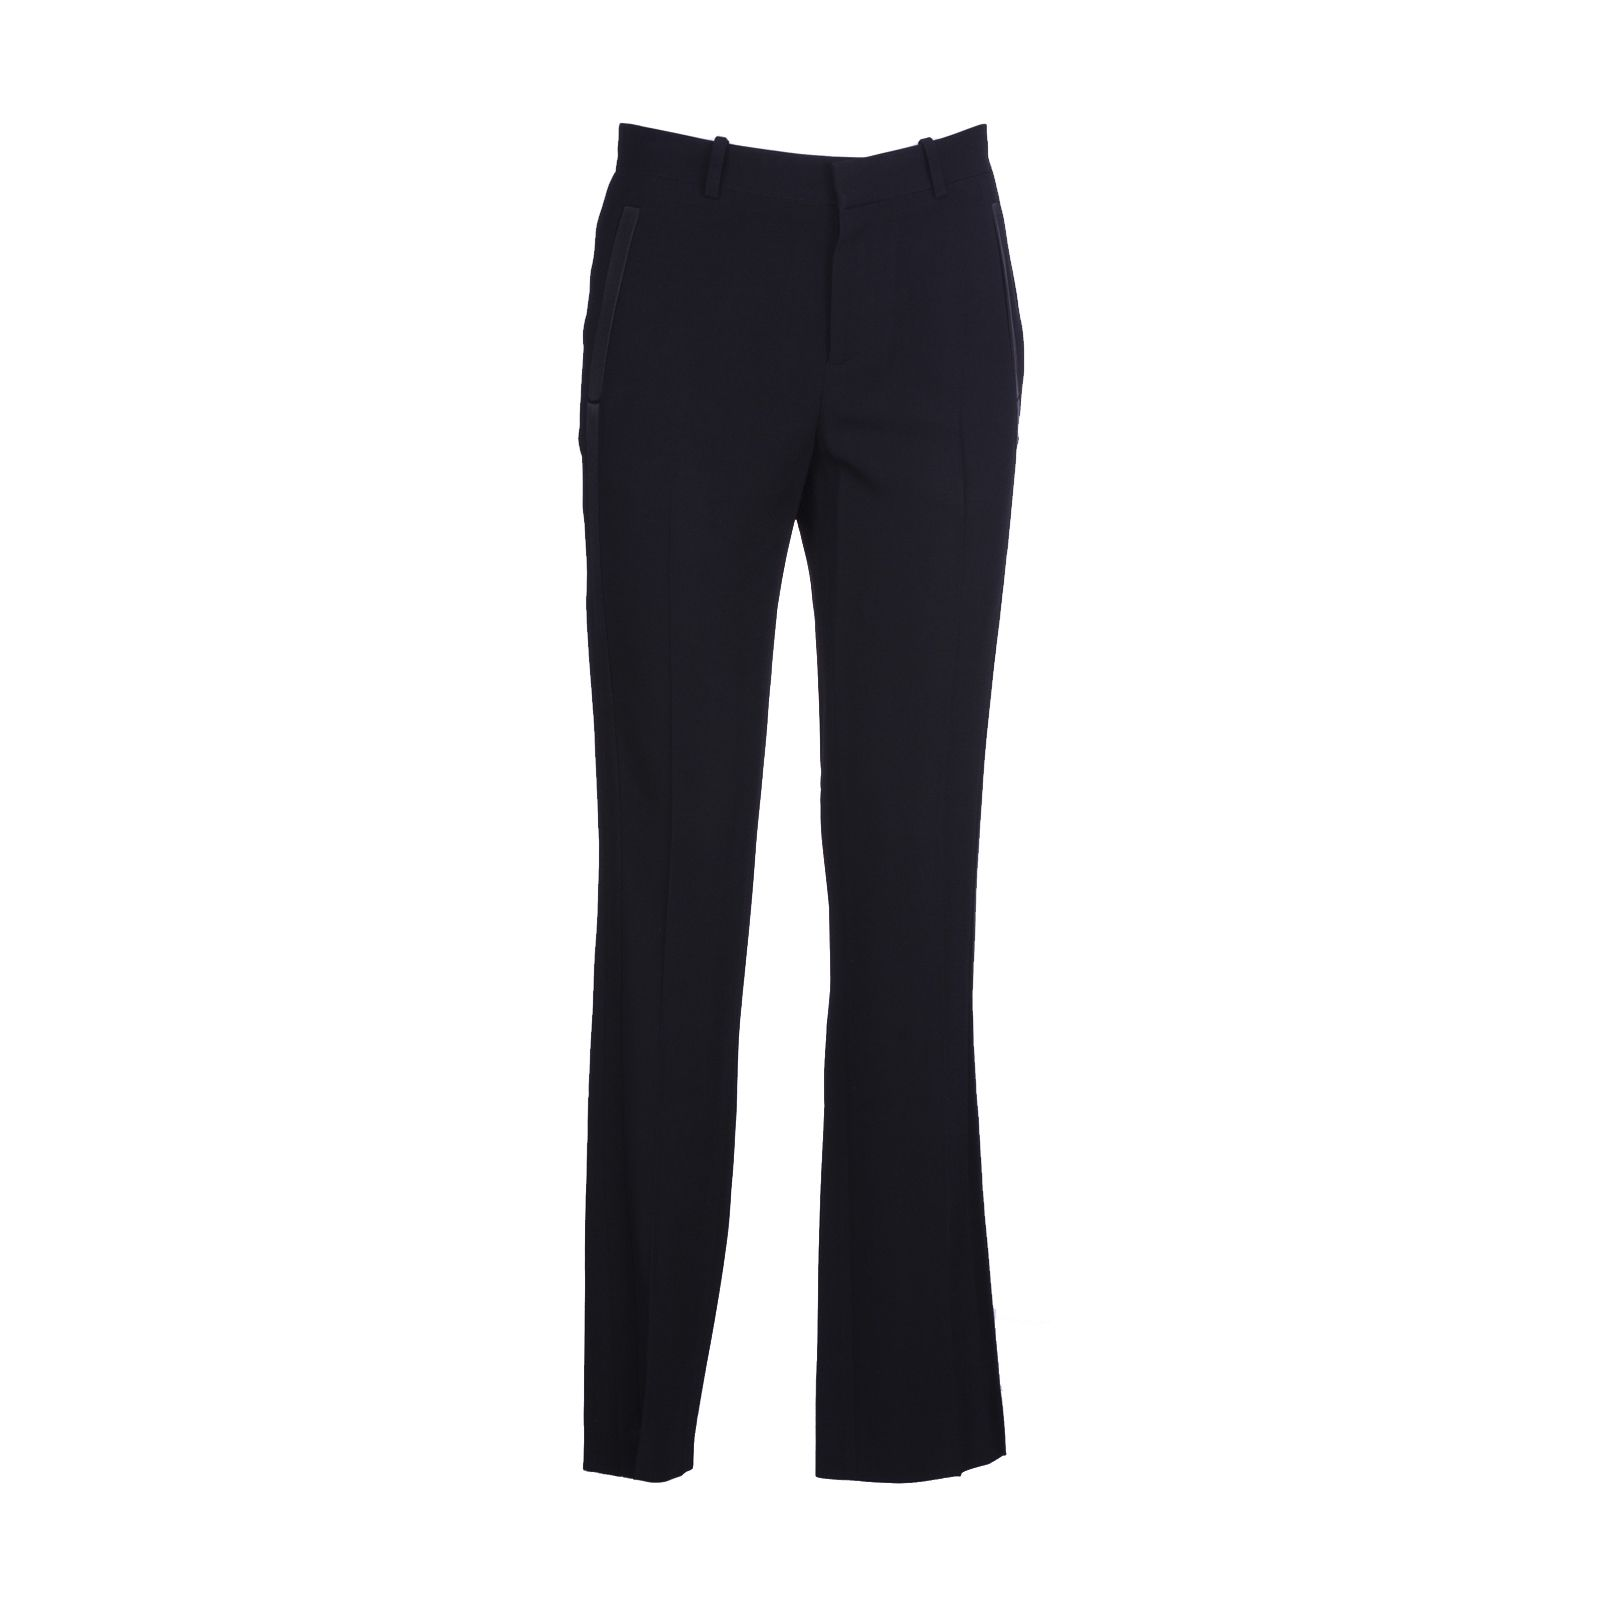 Tailored Trousers From Givenchy